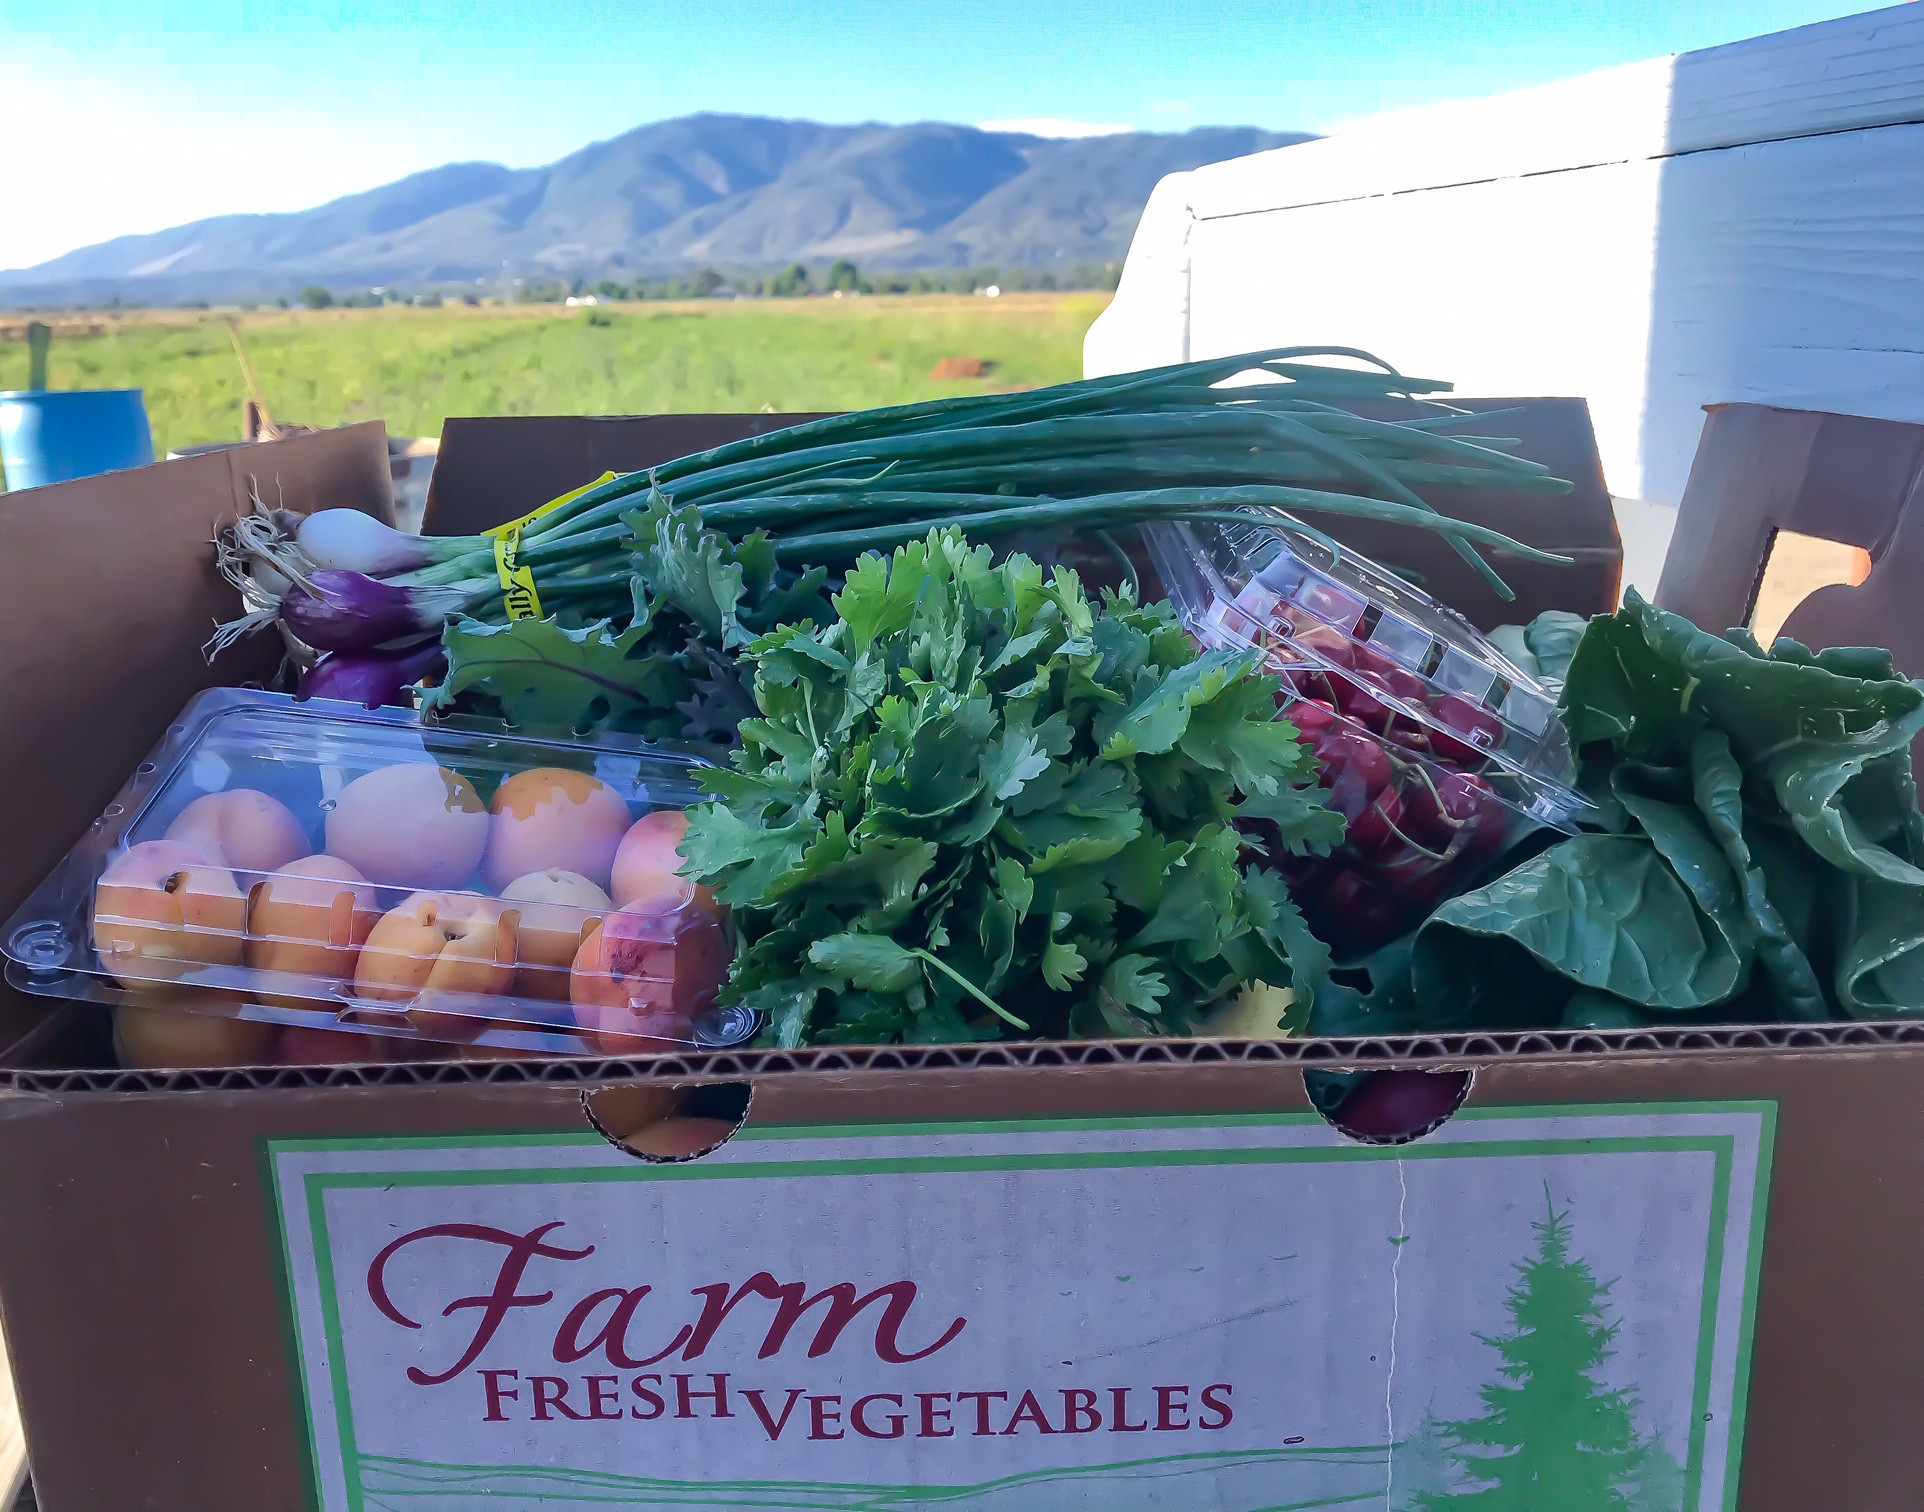 Freshly harvested veggies and fruits in our Organic Produce C.S.A. grown right here on our sustainable farm!